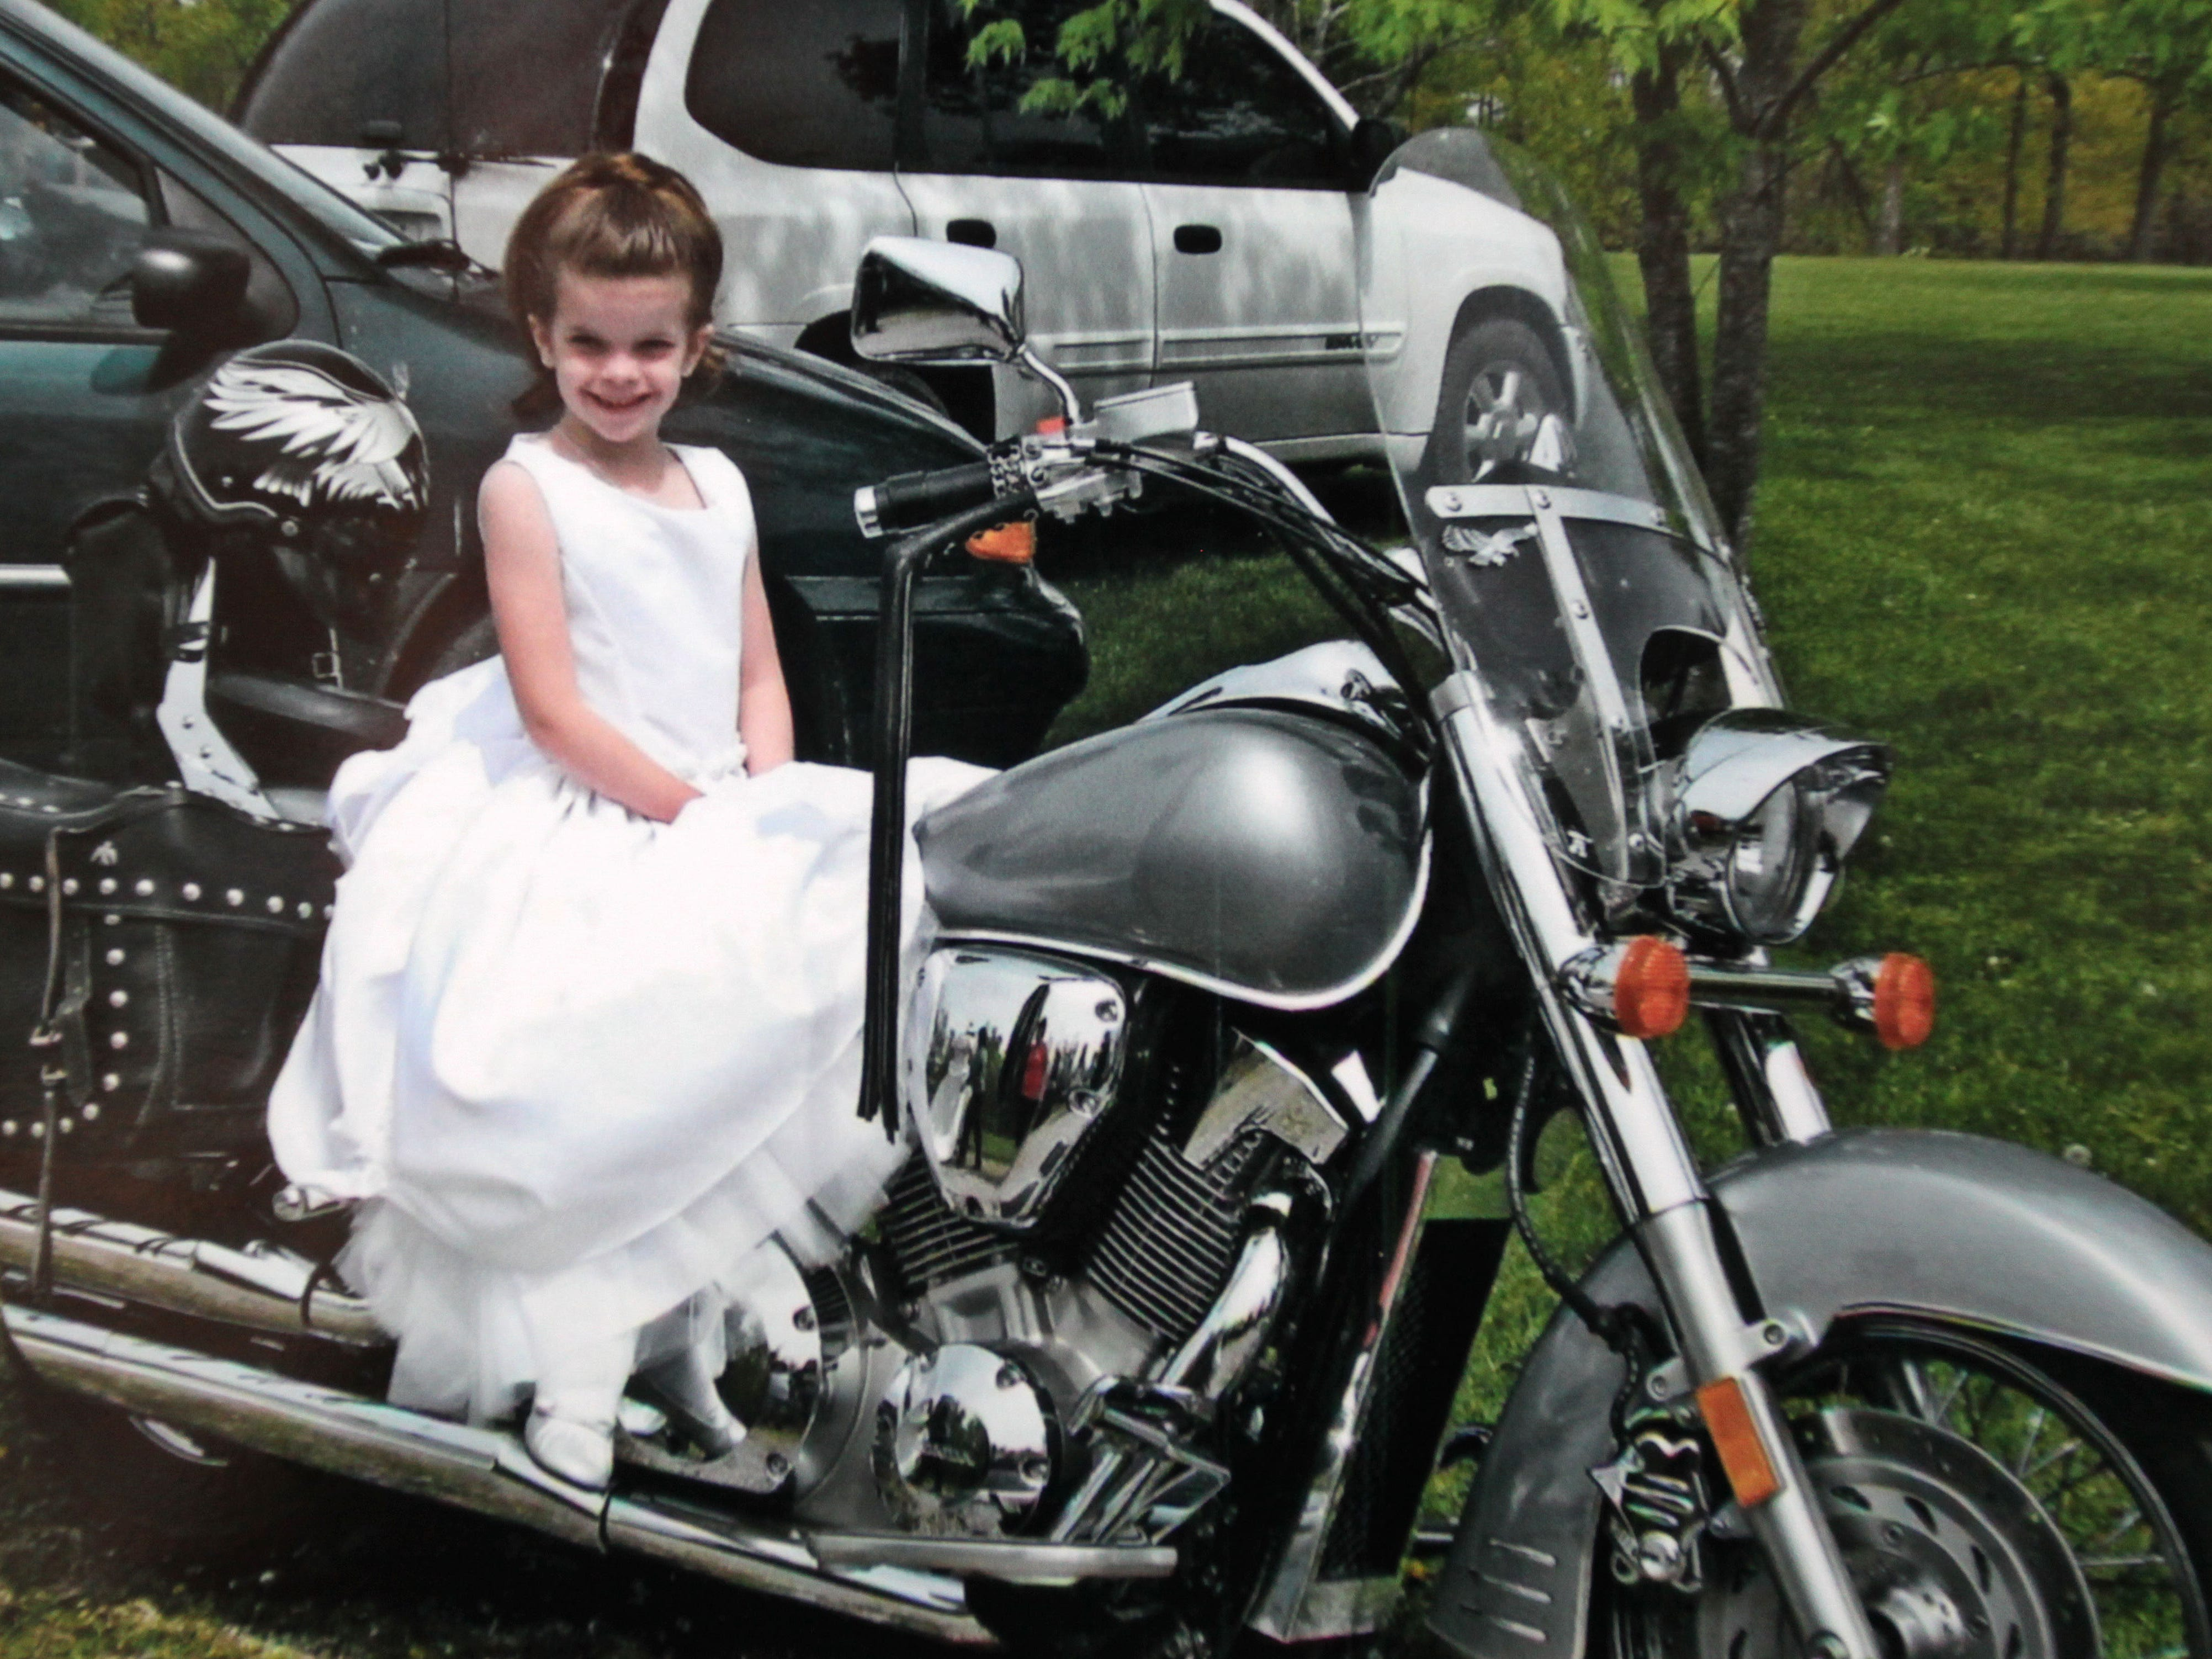 Hailey Owens in April 2009. Her family said she was a tomboy, but also loved to dress up.